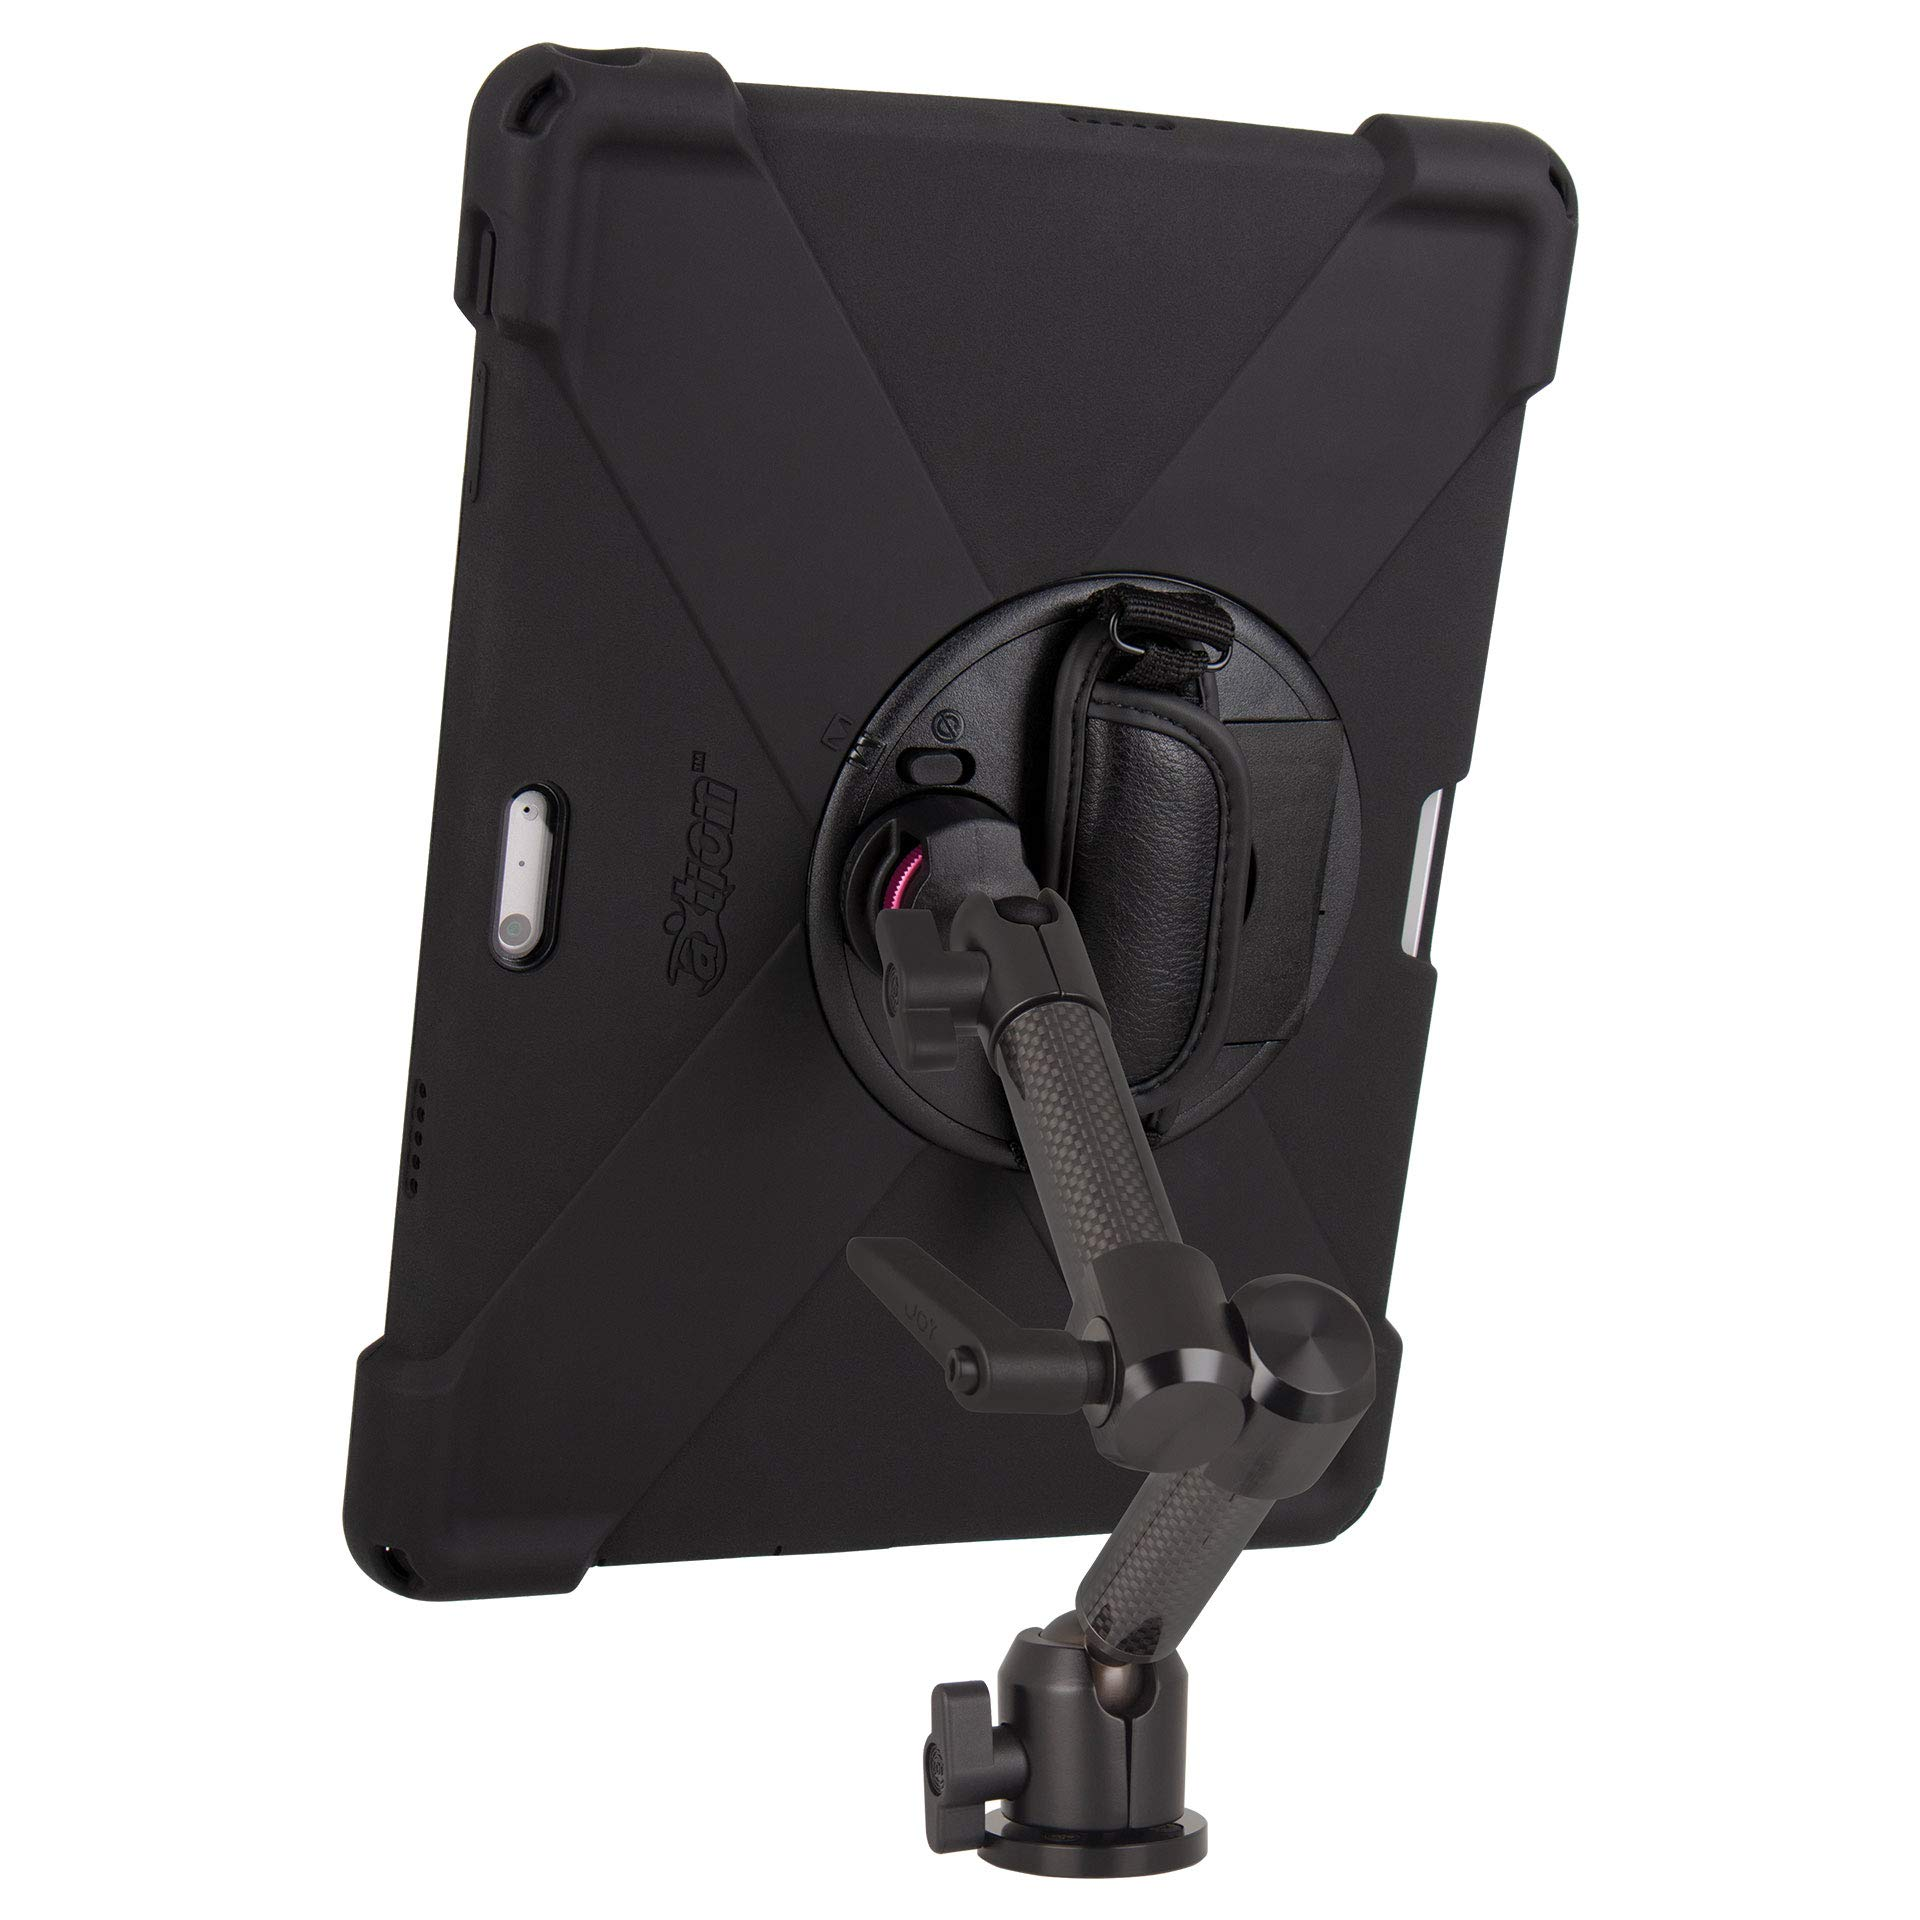 The Joy Factory MagConnect Carbon Fiber Wall/Counter Mount w/aXtion Bold MP Water-Resistant Rugged Shockproof Case for Surface Pro 4/5/6, Built-in Screen Protector, Hand Strap, Kickstand (MWM3004MP) by The Joy Factory (Image #2)